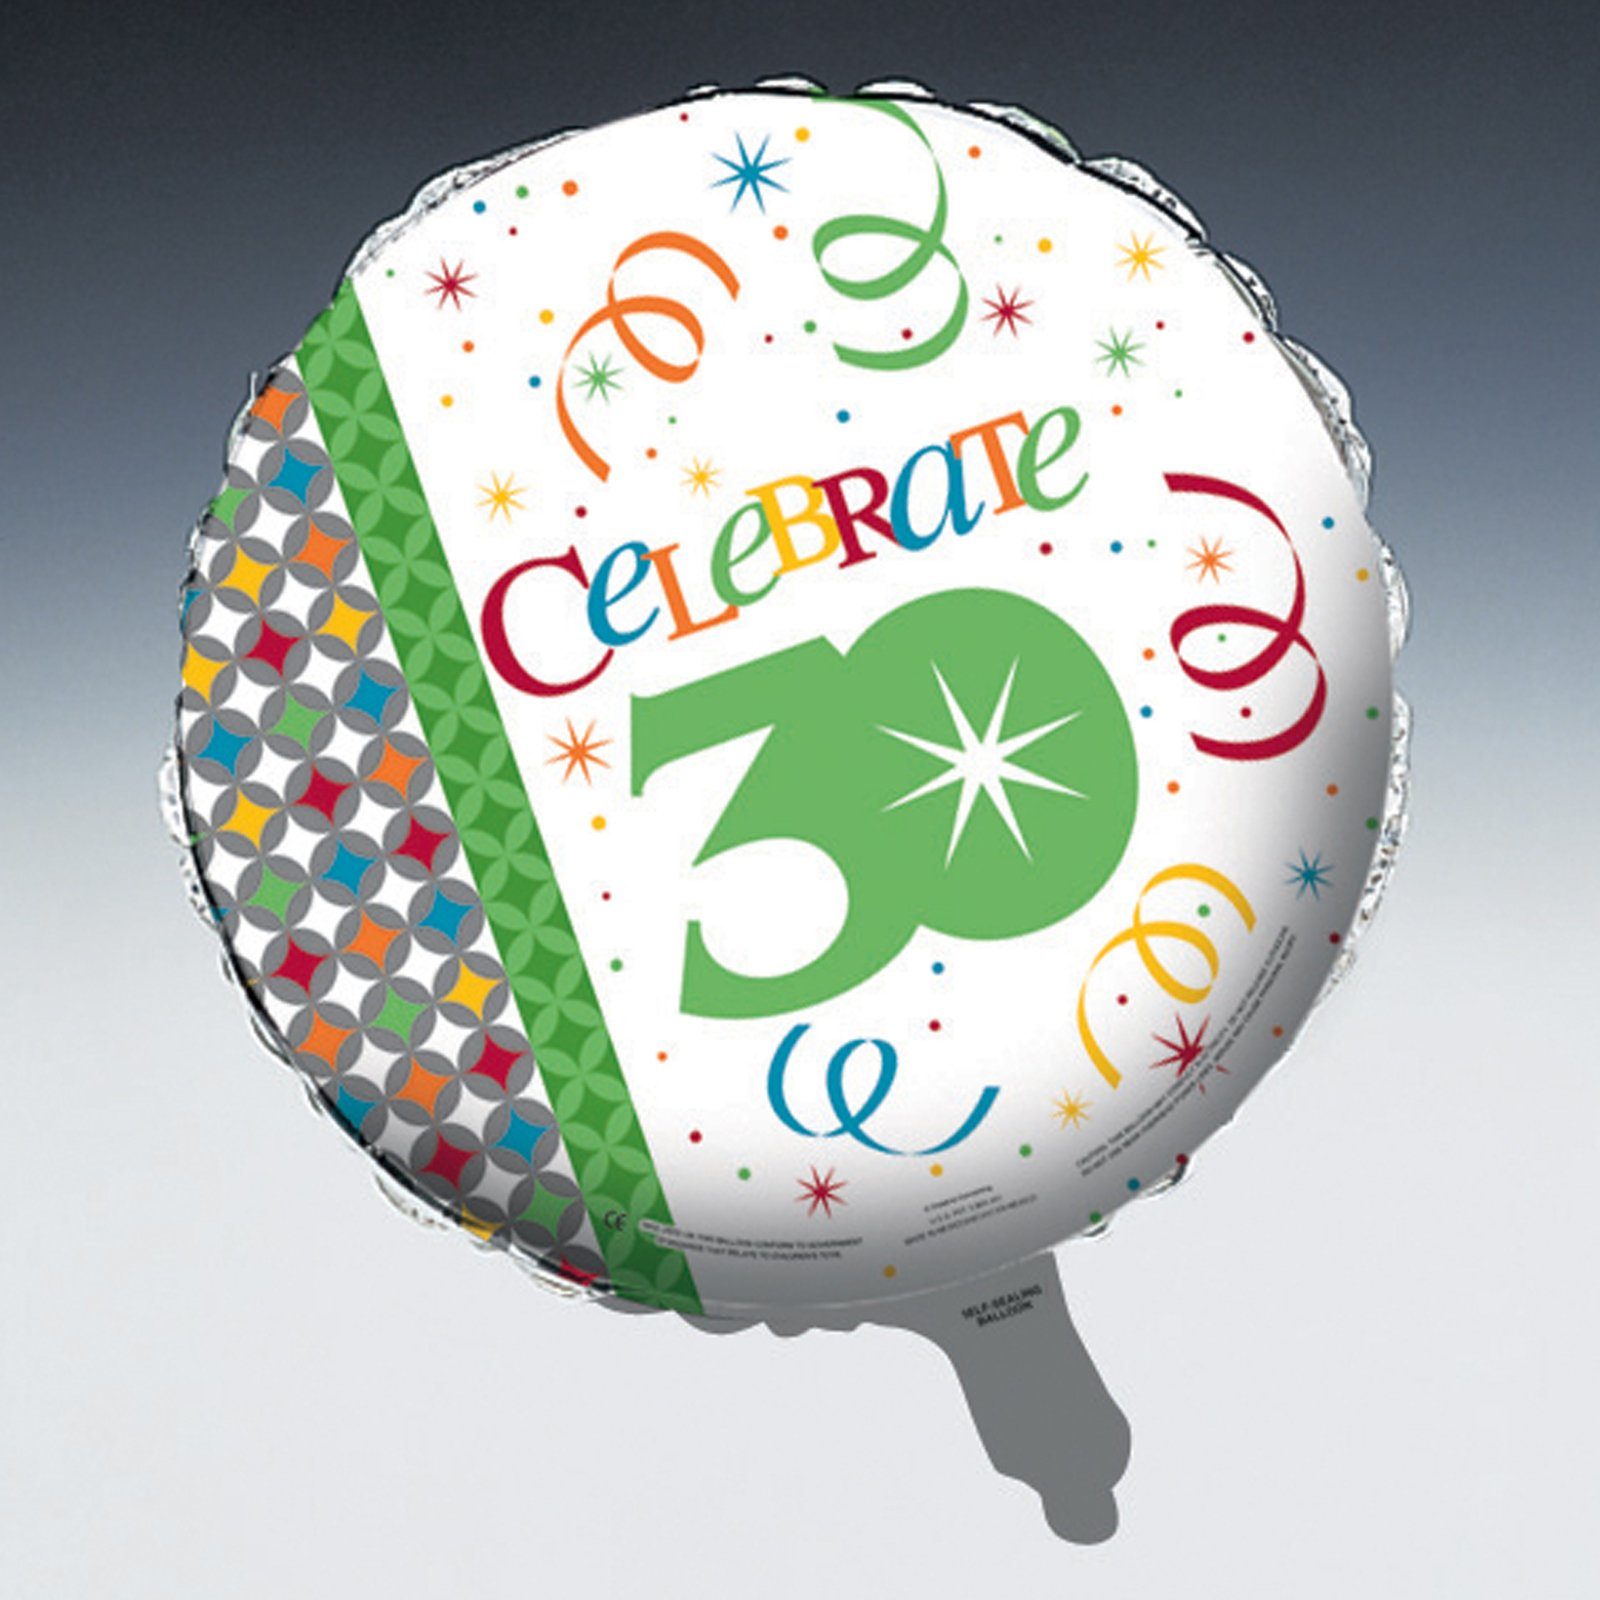 "Celebrate In Style 30 - 18"" Foil Balloon"